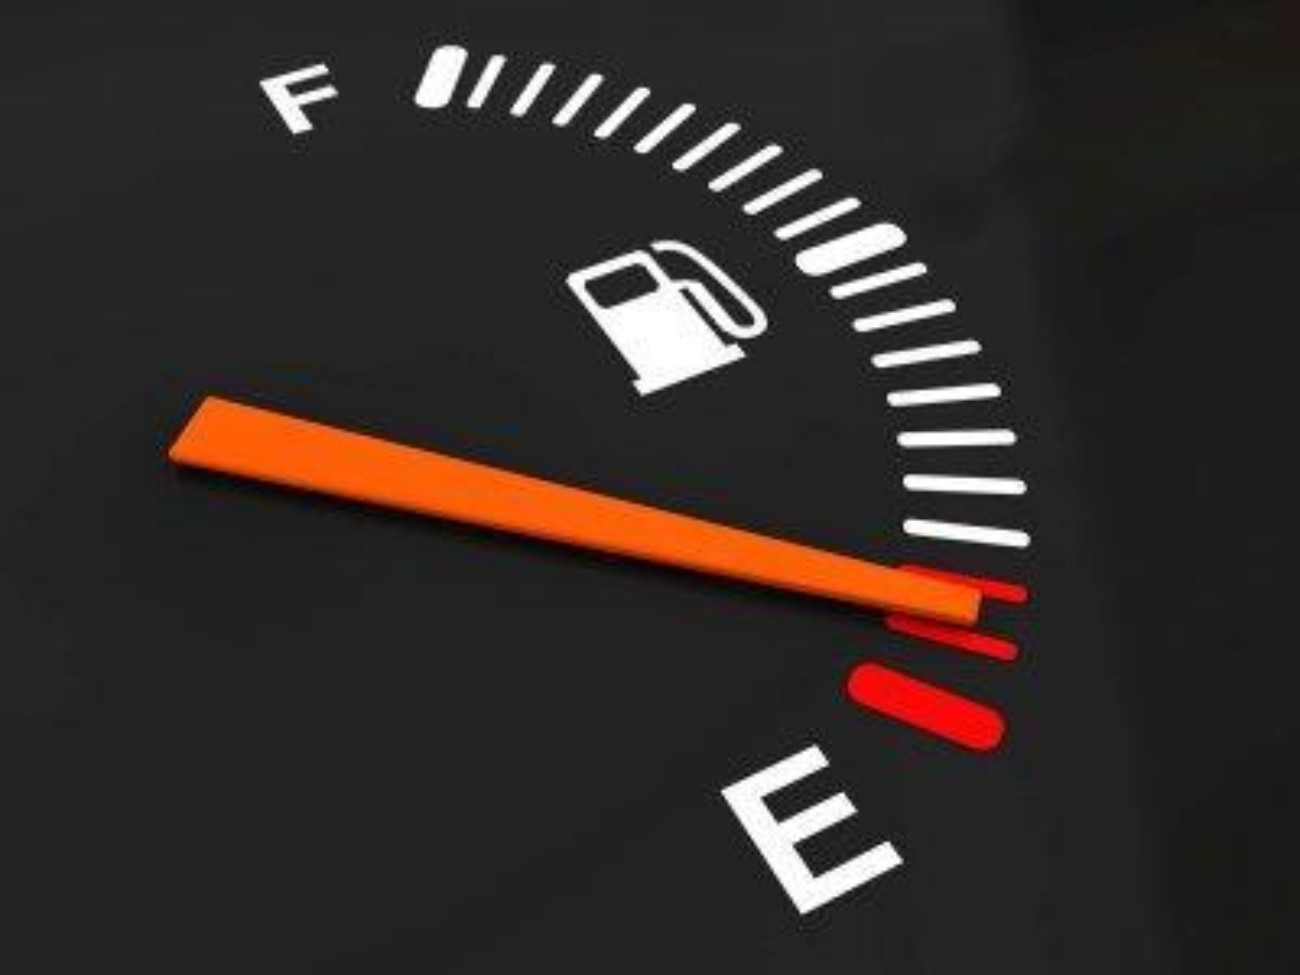 Learn how to drive more fuel efficiently and save money with FuelGood Training